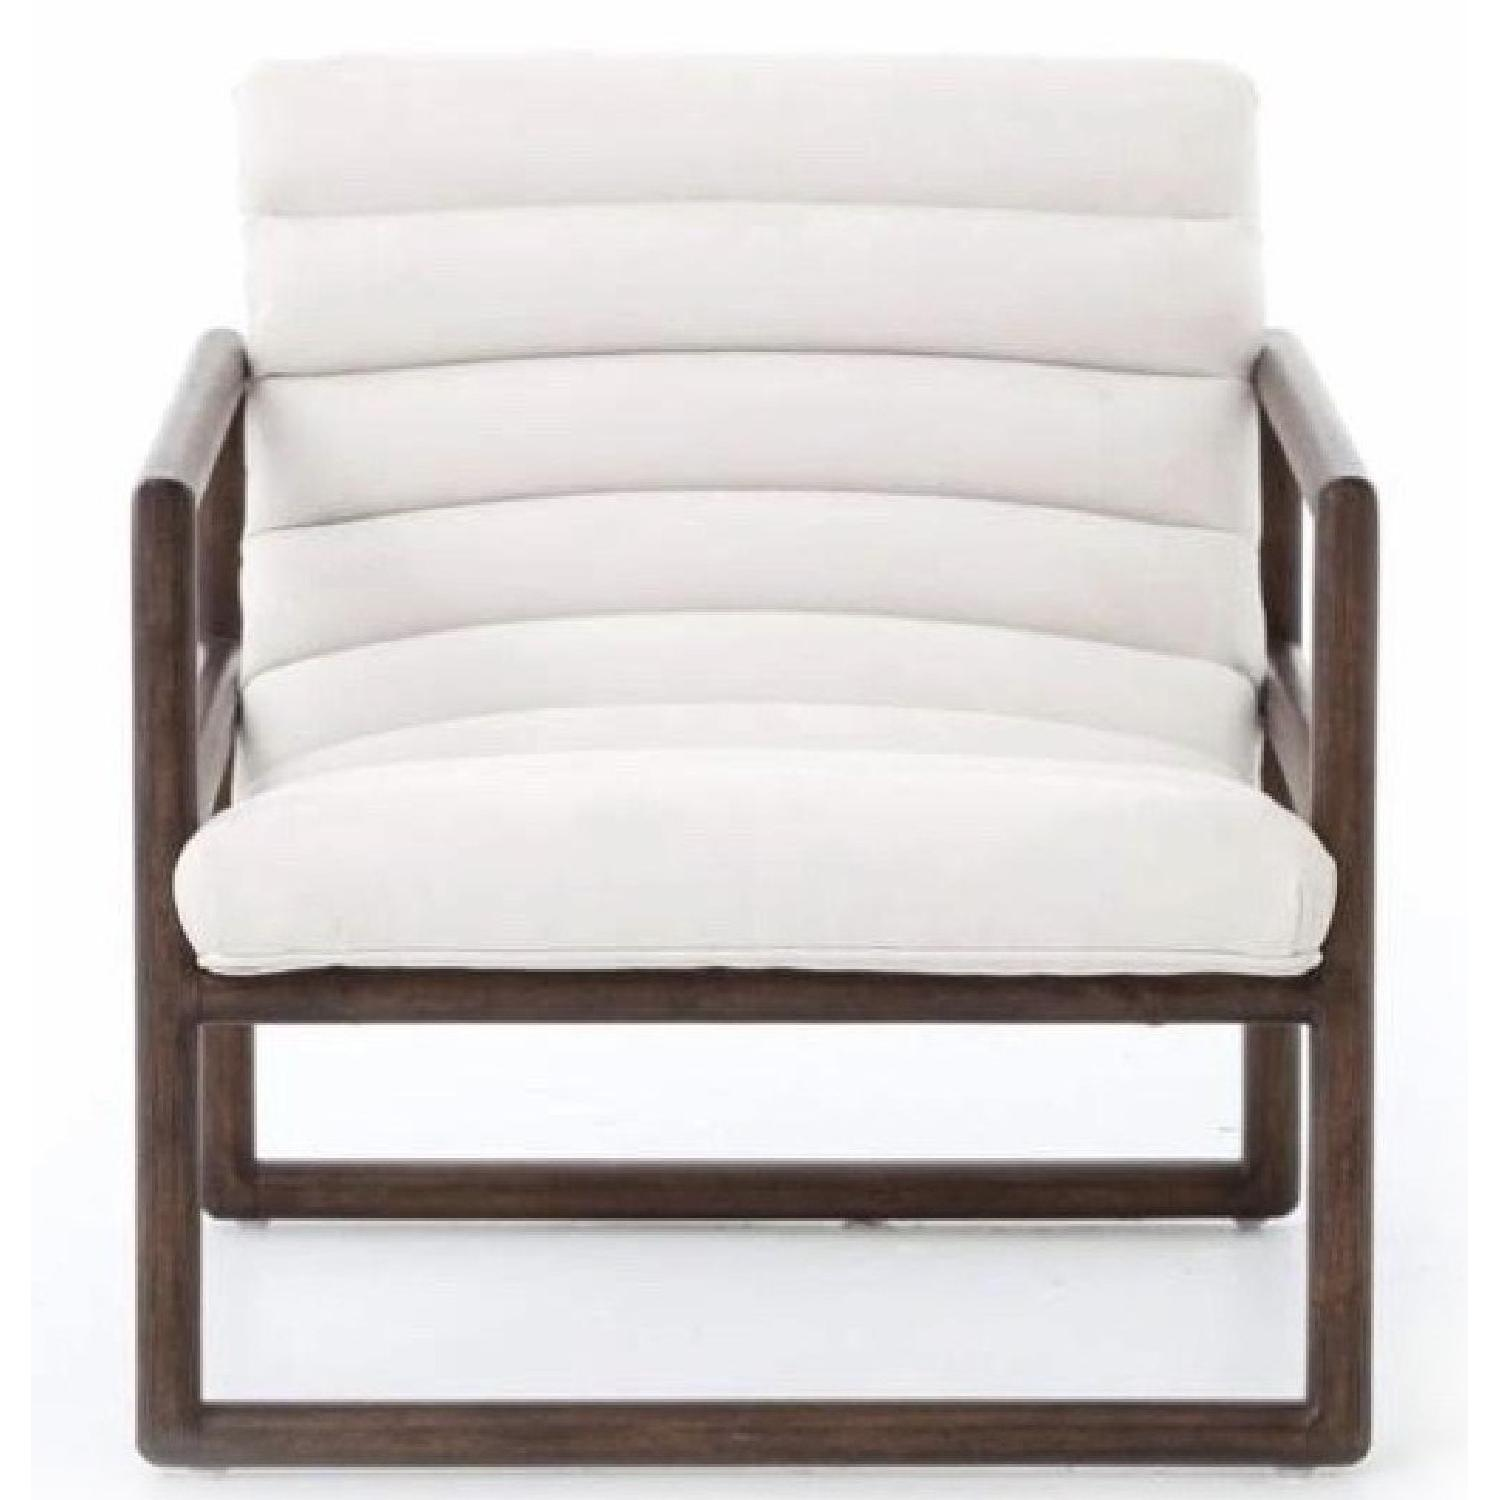 France & Son Fitz Chairs - image-0